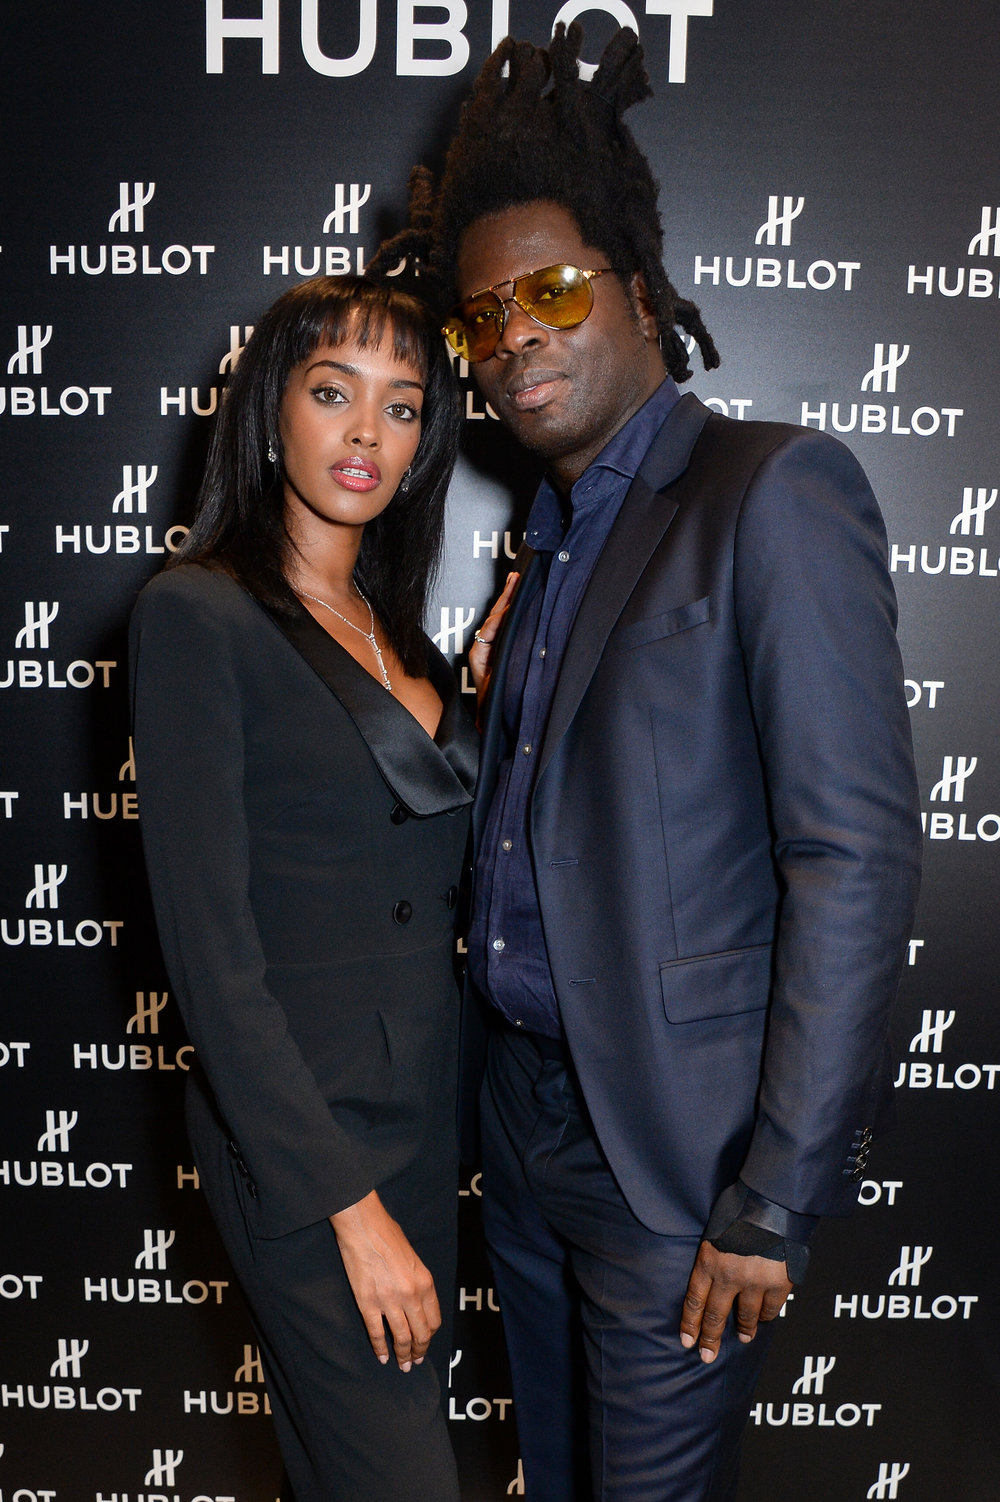 DMB-Hublot_London_Launch_SENT027.JPG